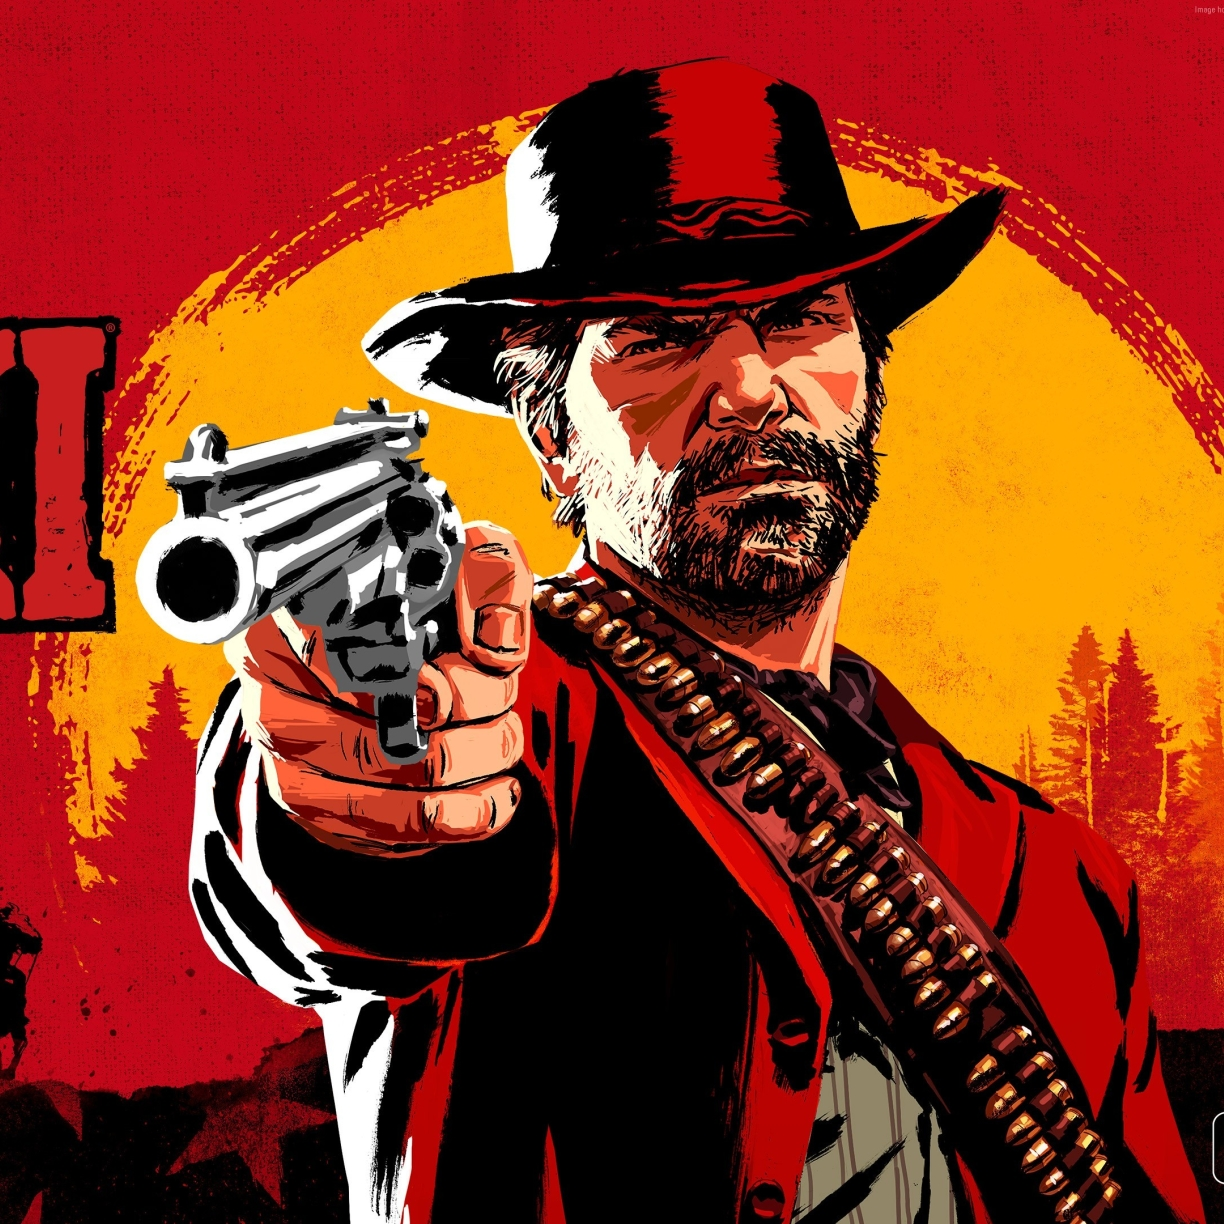 Red Dead Redemption 2 Game Poster 2018, HD 4K Wallpaper